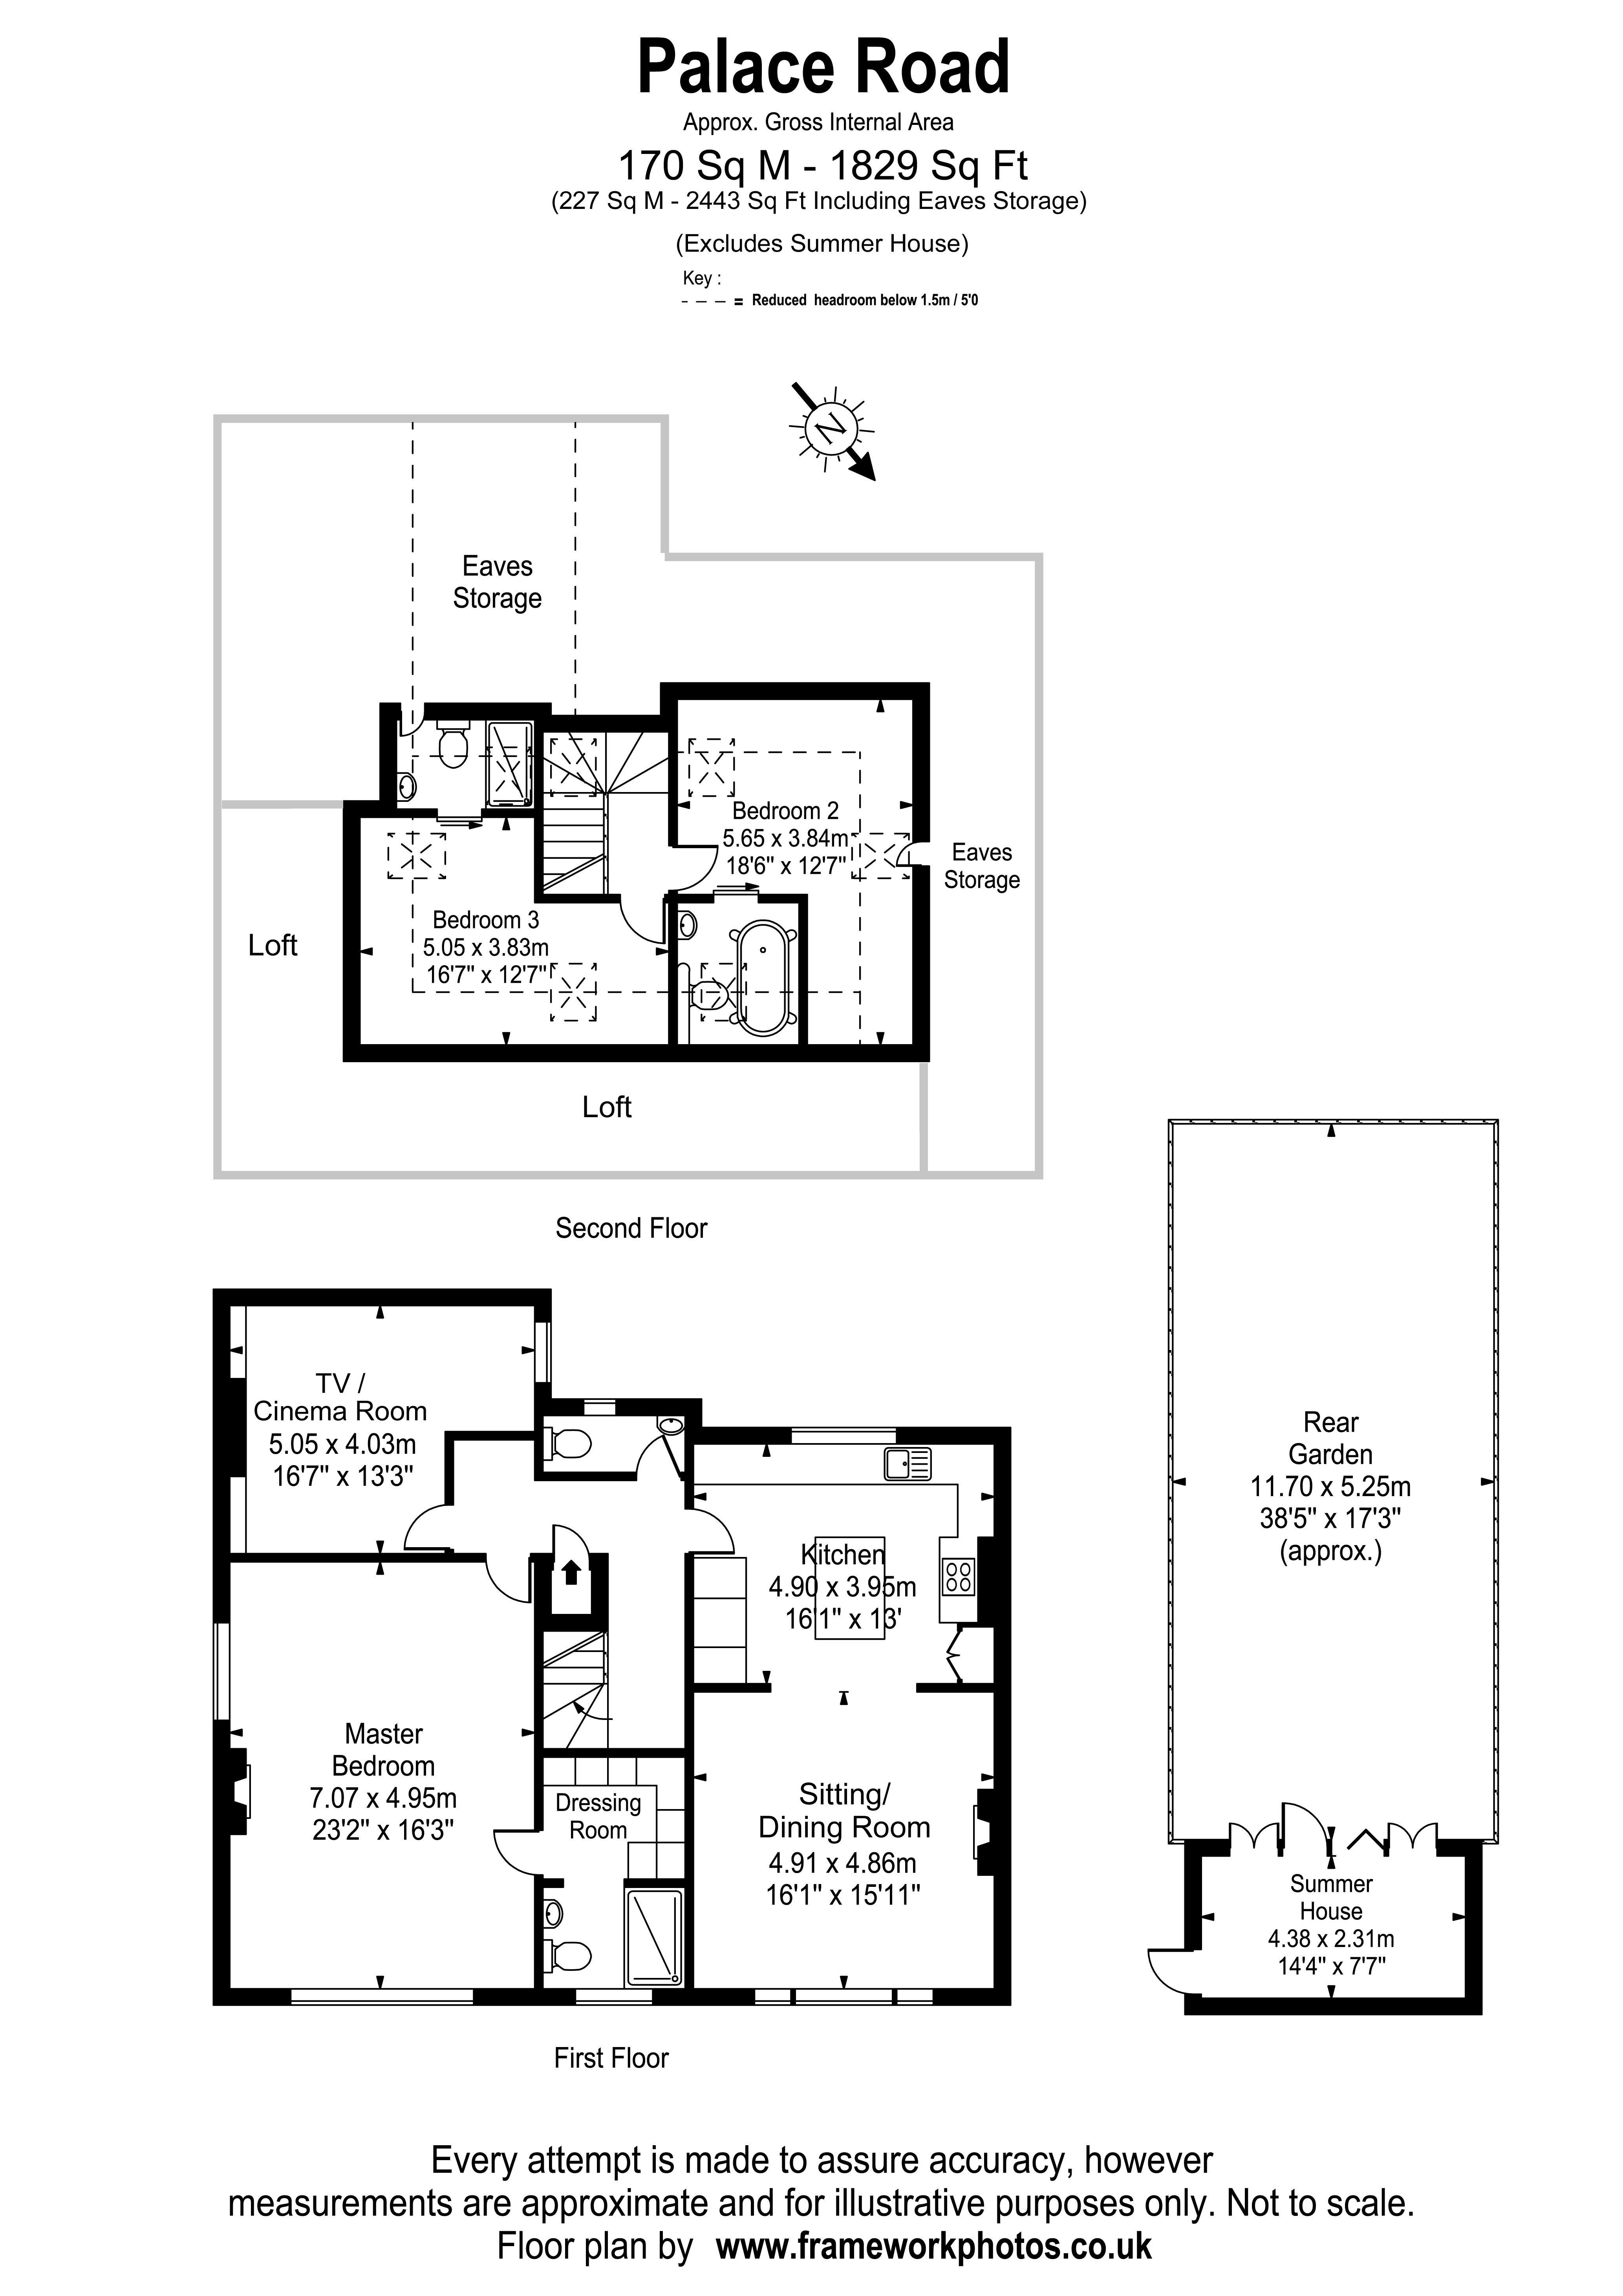 Floorplans For Palace Road, East Molesey